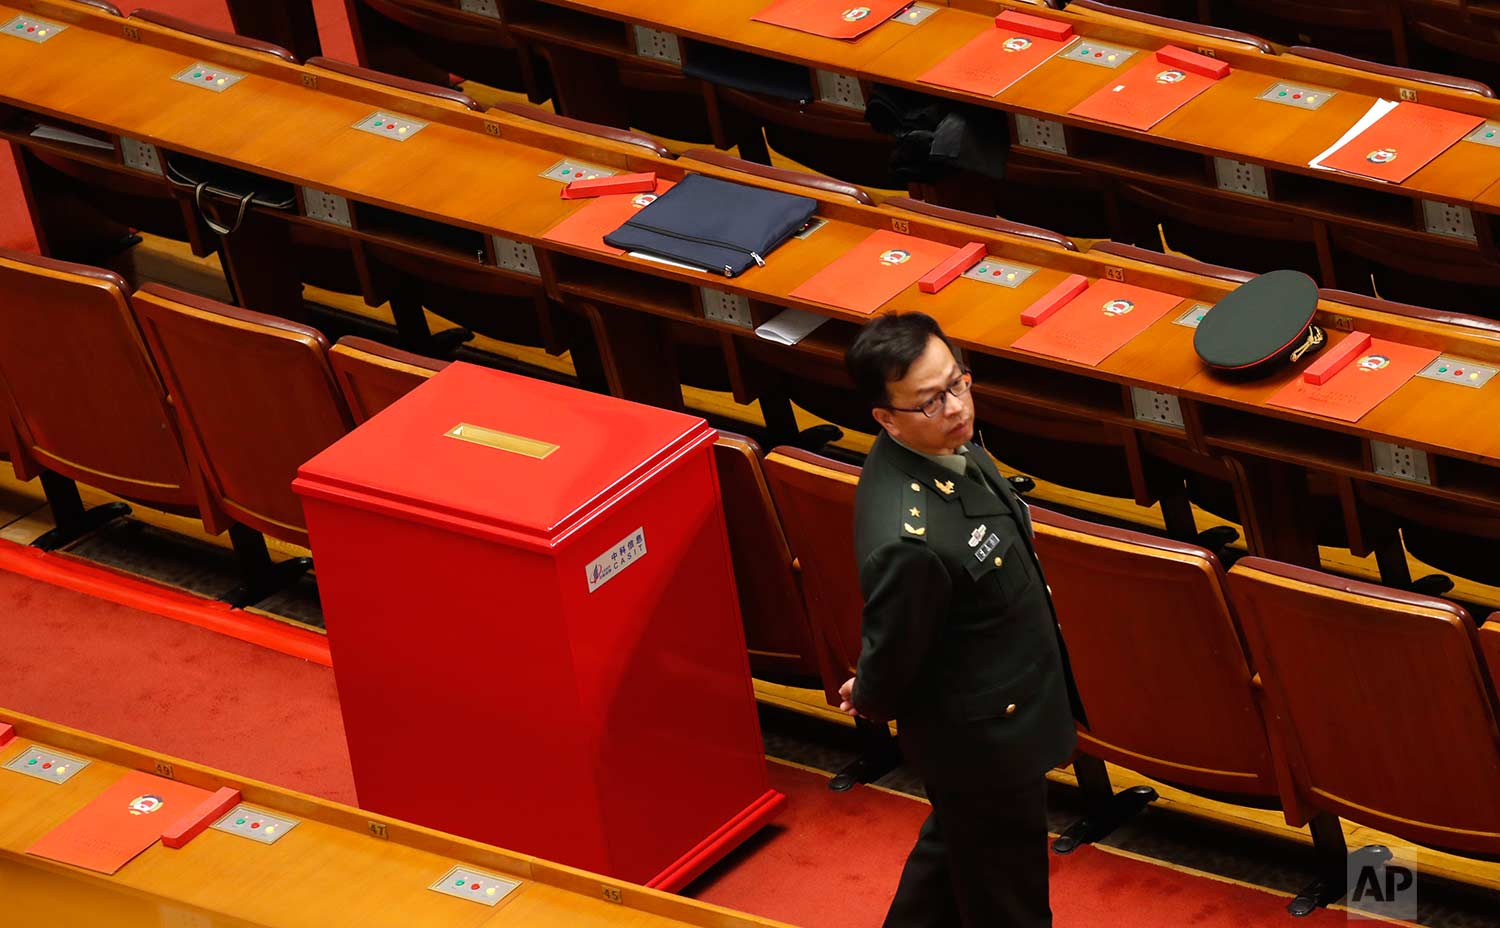 In this Wednesday, March 14, 2018 photo, a military delegate stands next to red ballot box during a plenary session of Chinese People's Political Consultative Conference (CPPCC) at the Great Hall of the People in Beijing, Wednesday, March 14, 2018. (AP Photo/Aijaz Rahi)